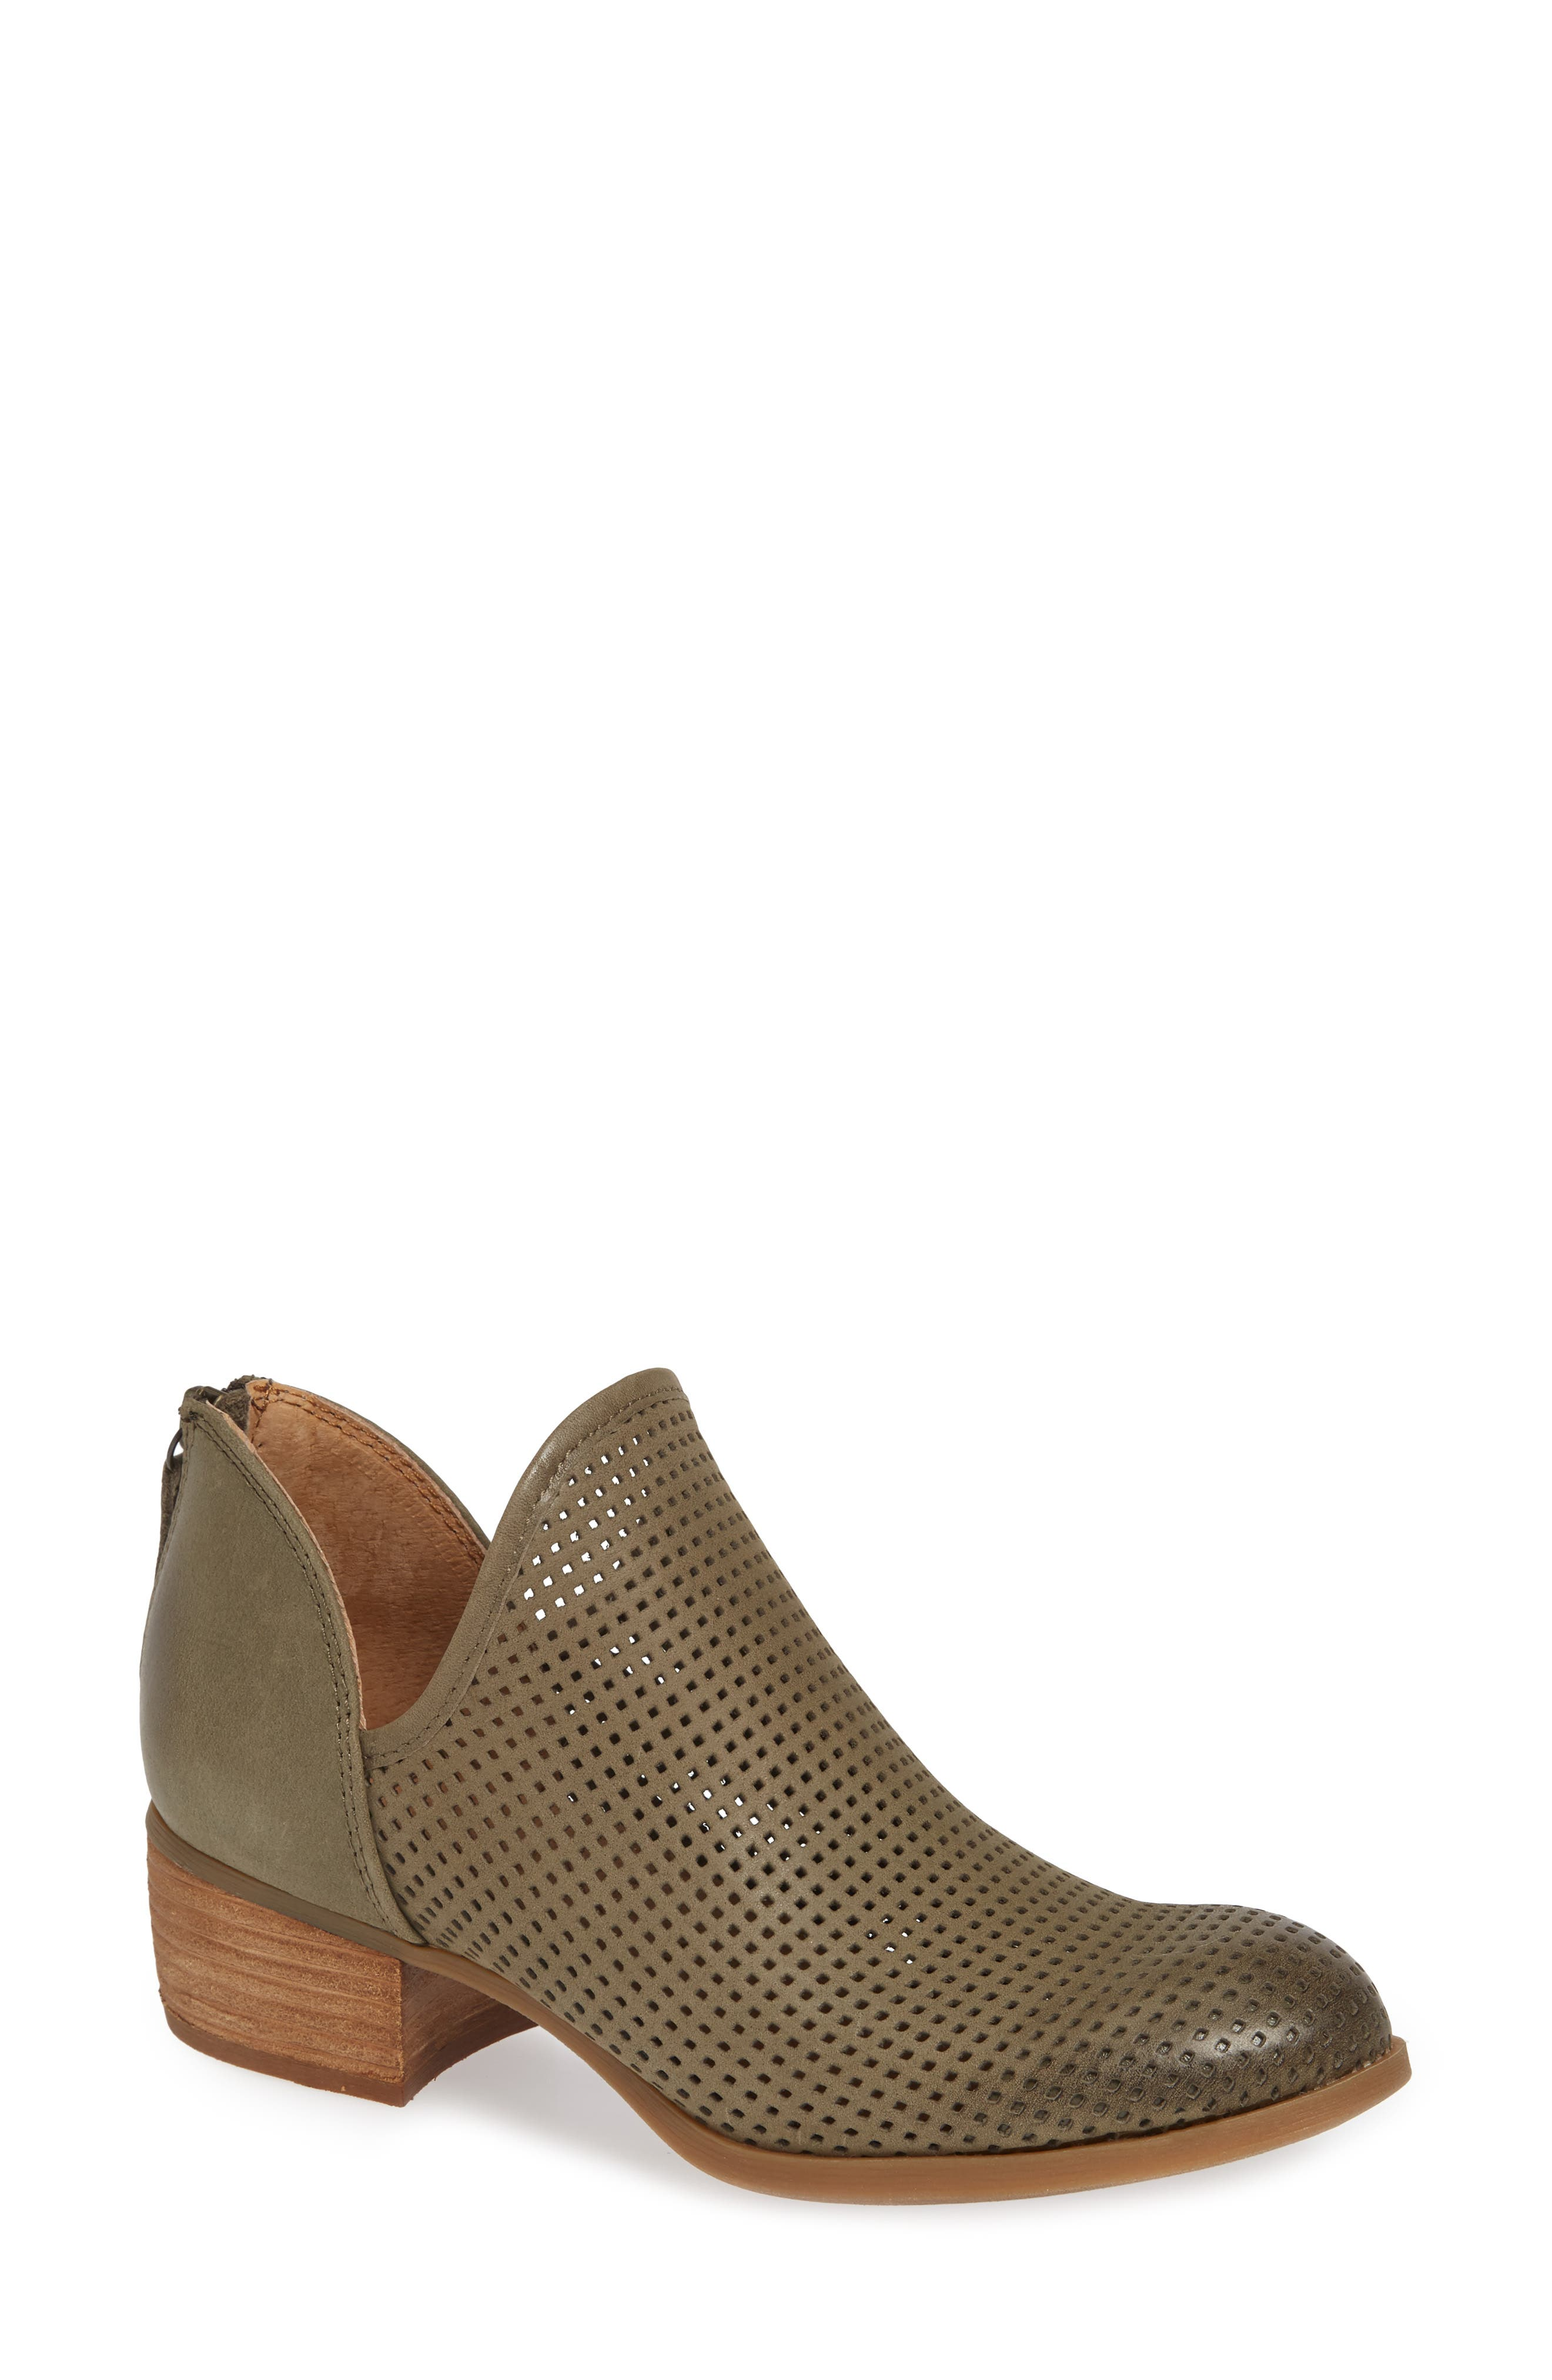 Sofft Canobie Bootie, Green